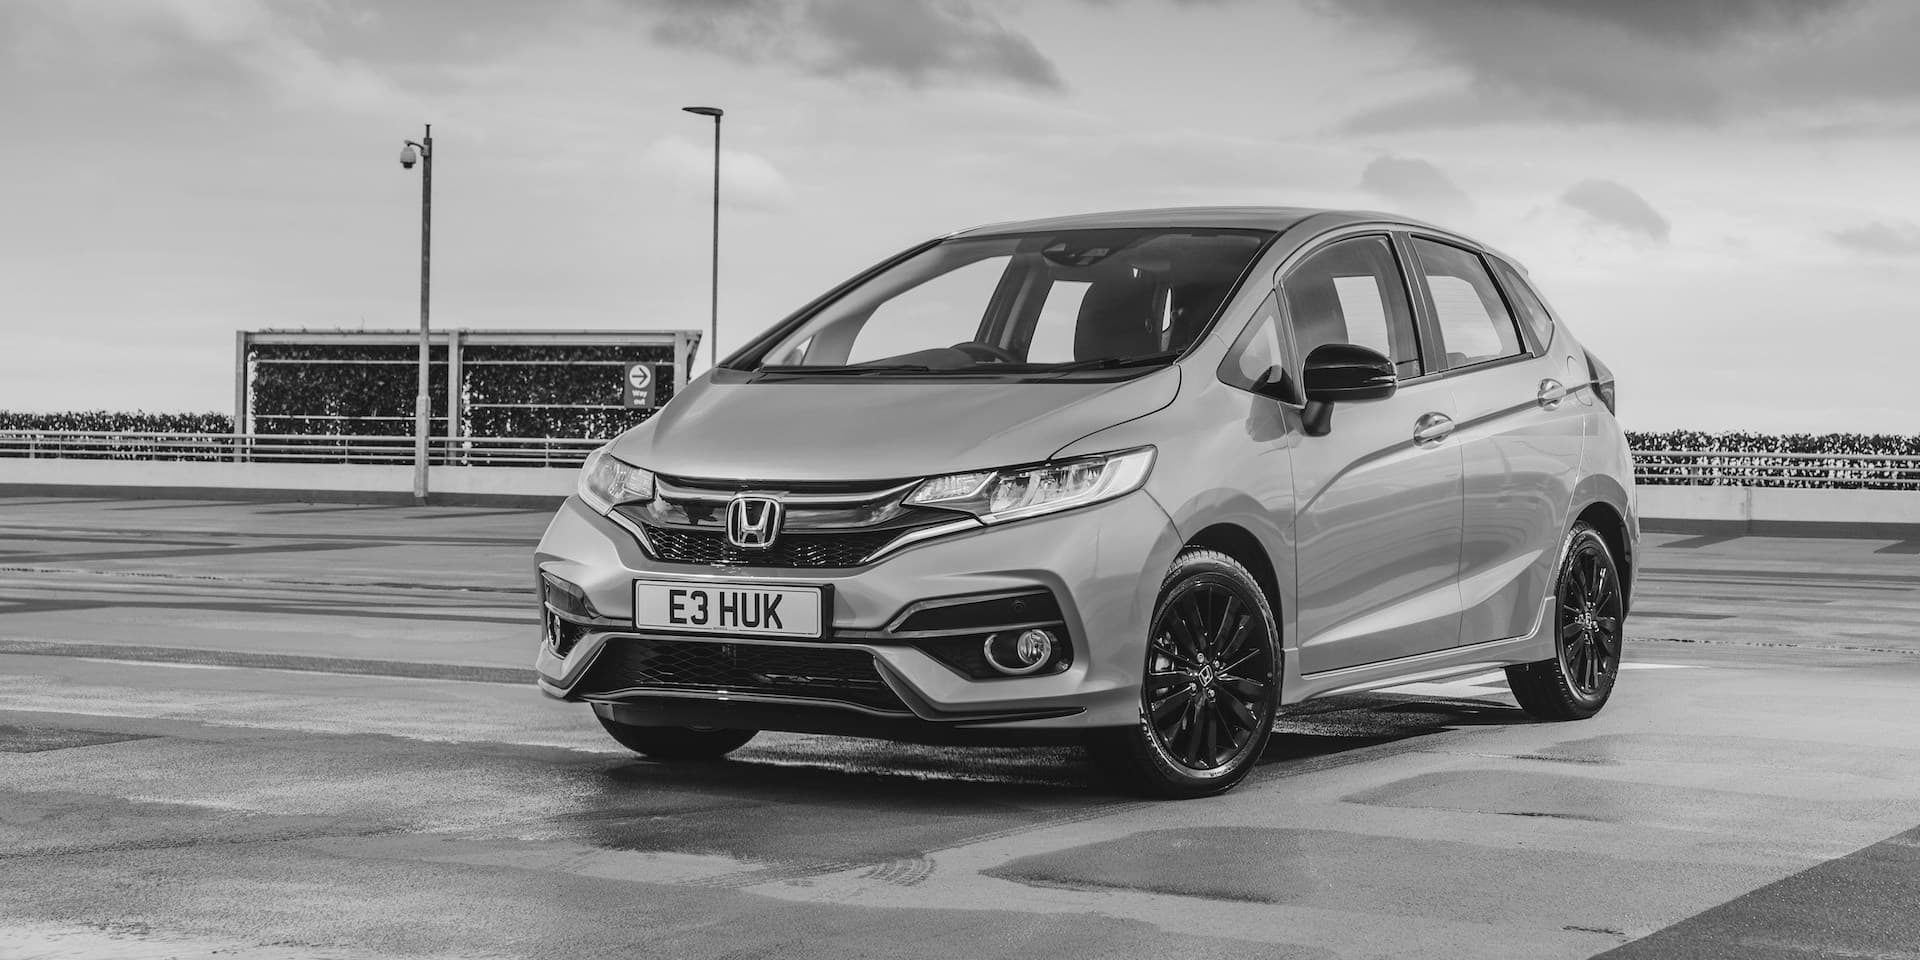 Honda Jazz (2015 - 2019) Expert Rating